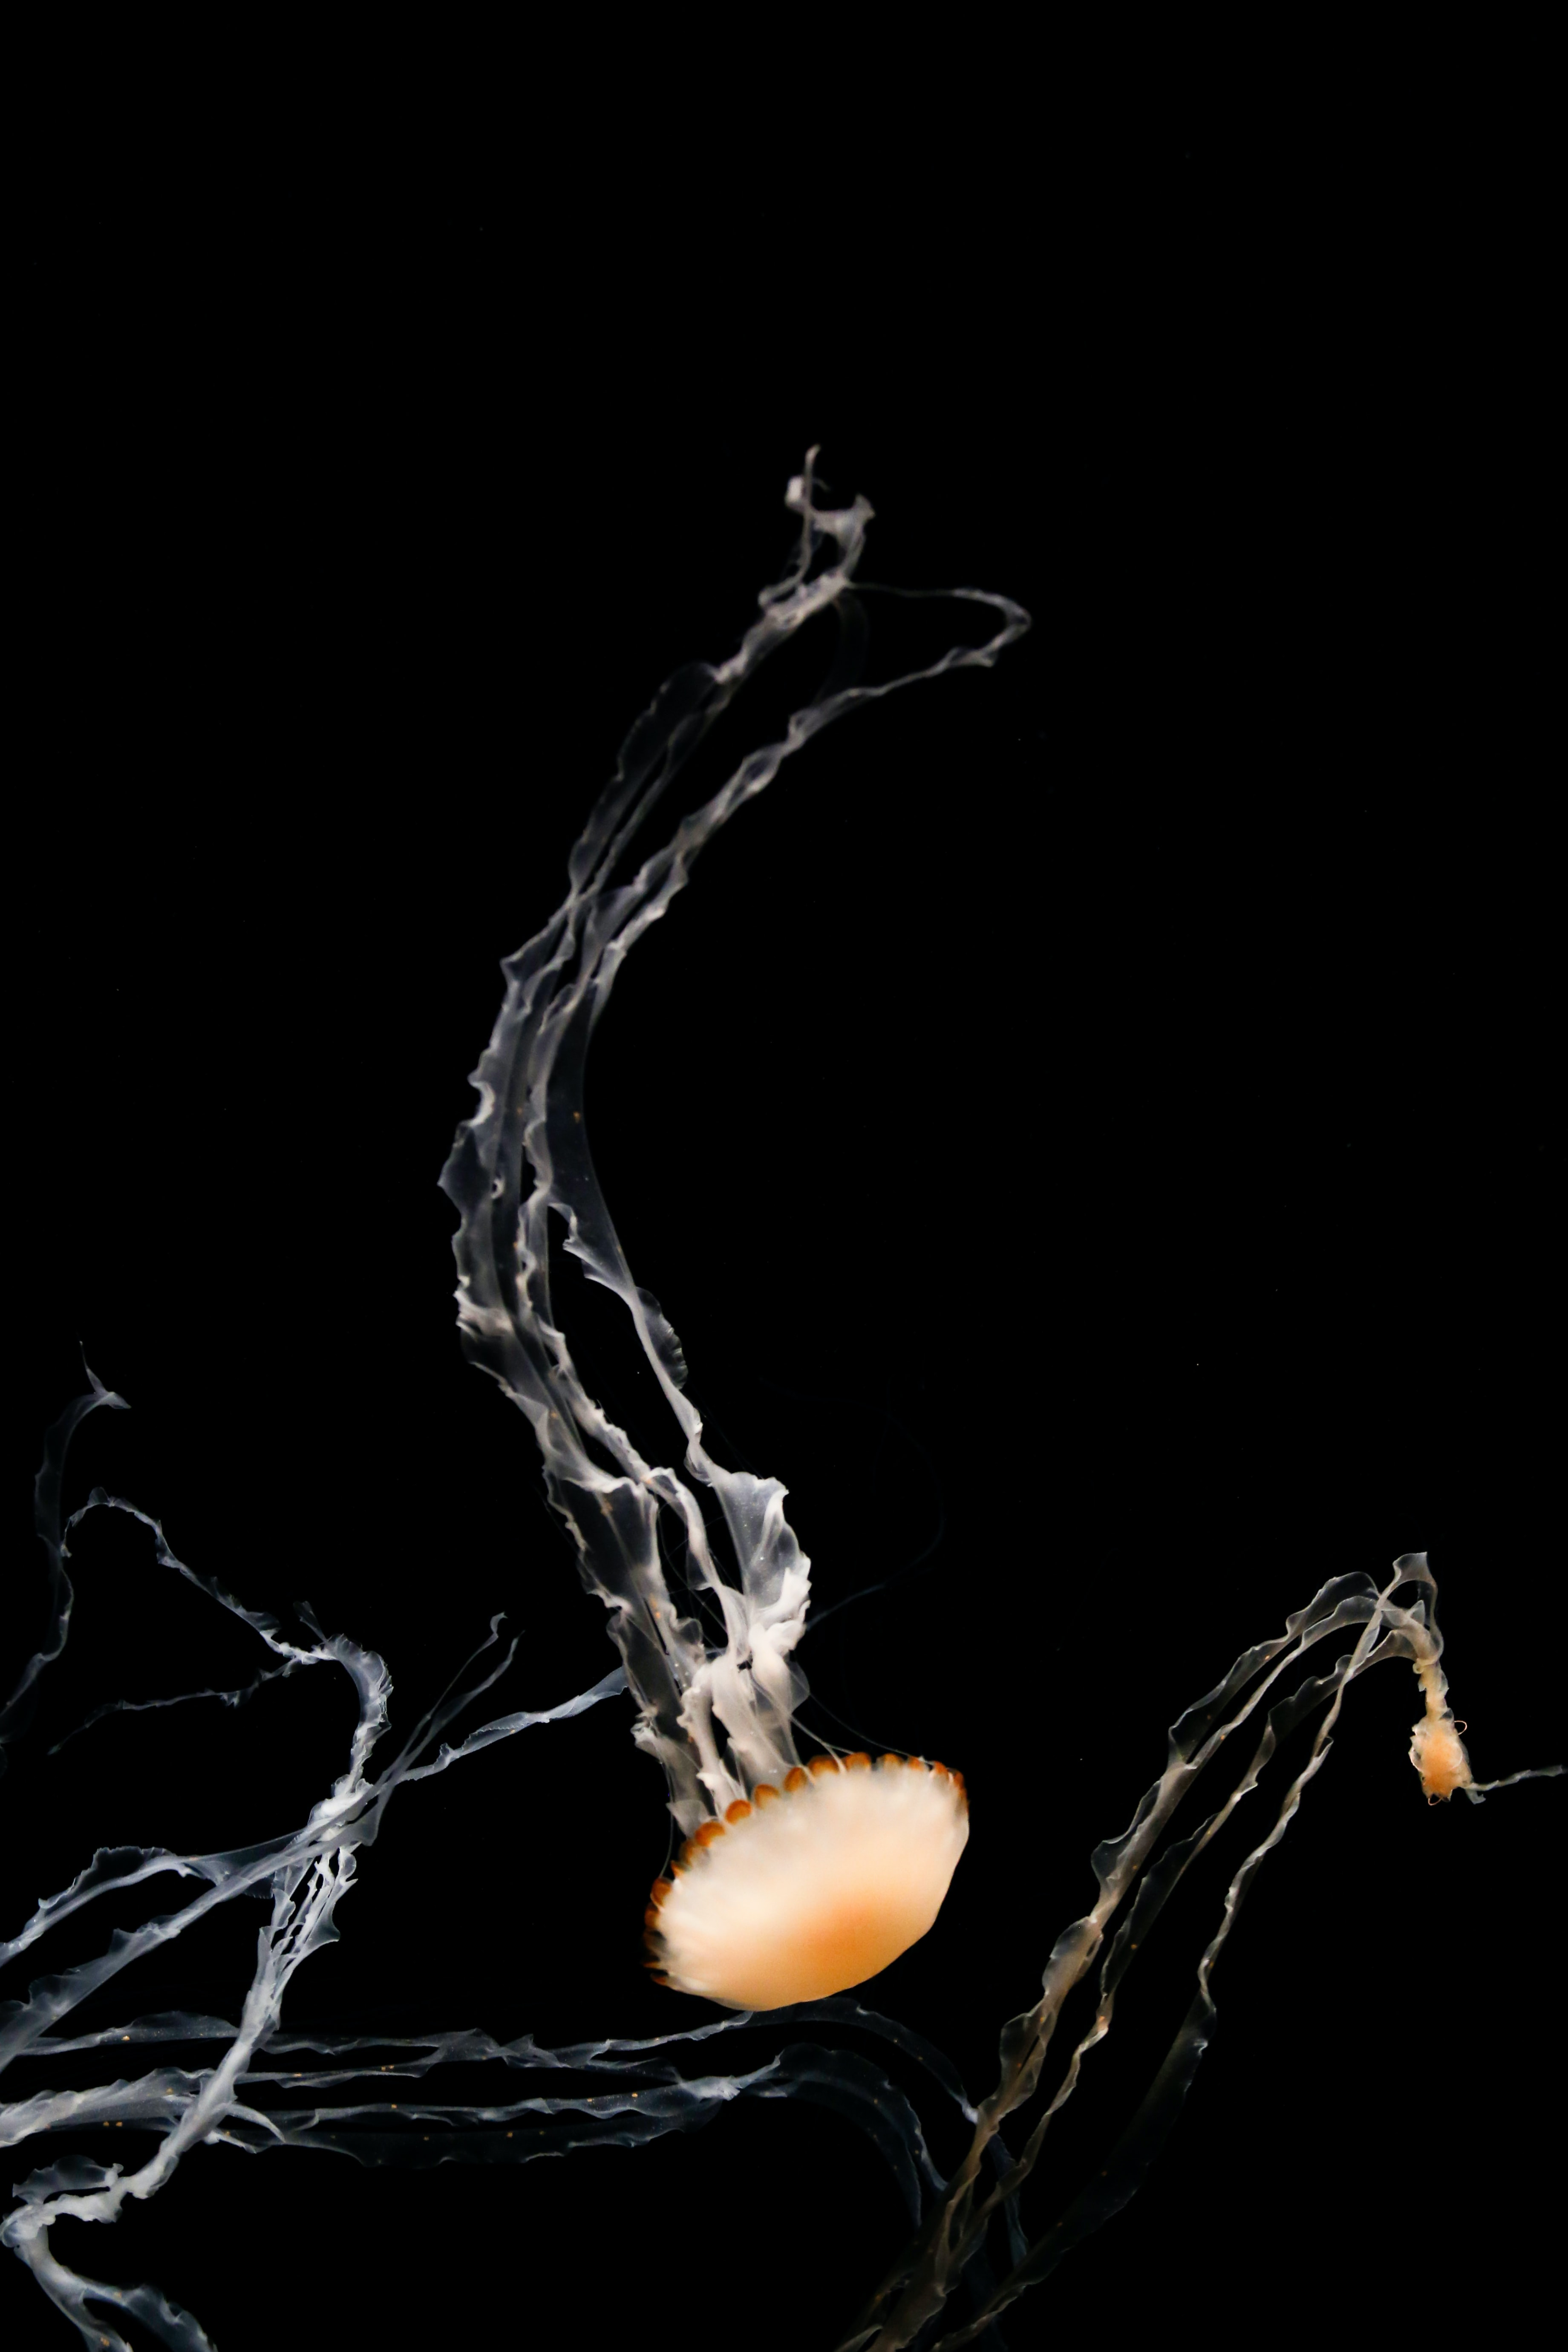 149710 download wallpaper Animals, Tentacles, Creatures, Brown, Under Water, Underwater, Jellyfish screensavers and pictures for free